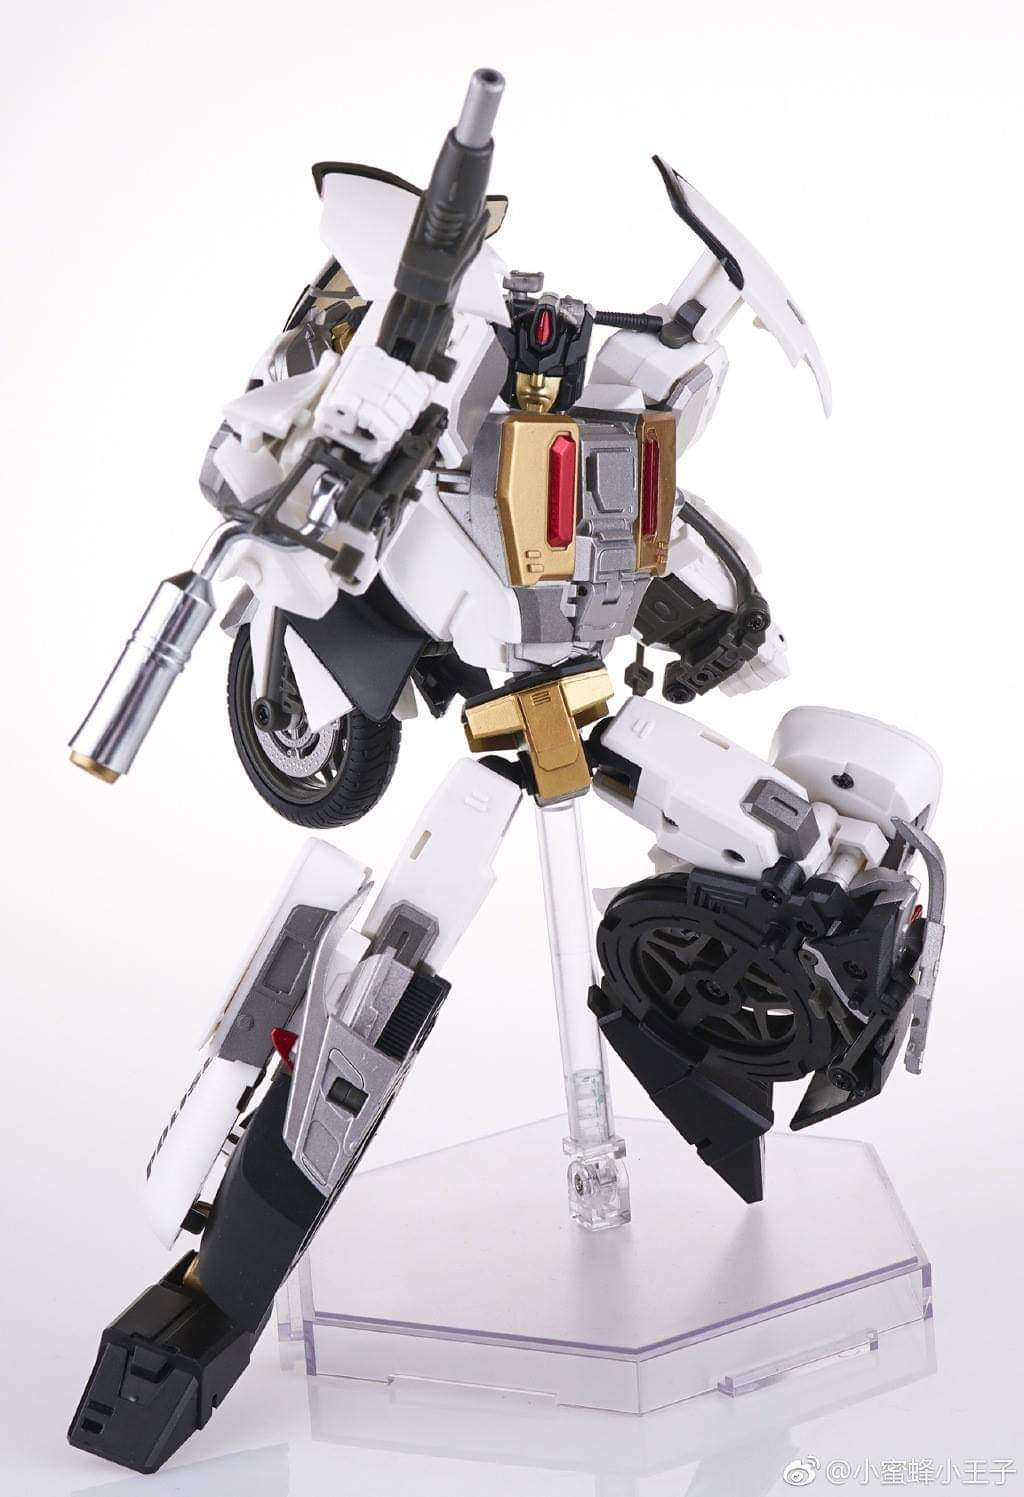 [Generation Toy] Produit Tiers - Jouet GT-08 Guardian - aka Defensor/Defenso - Page 2 GTakGVdc_o